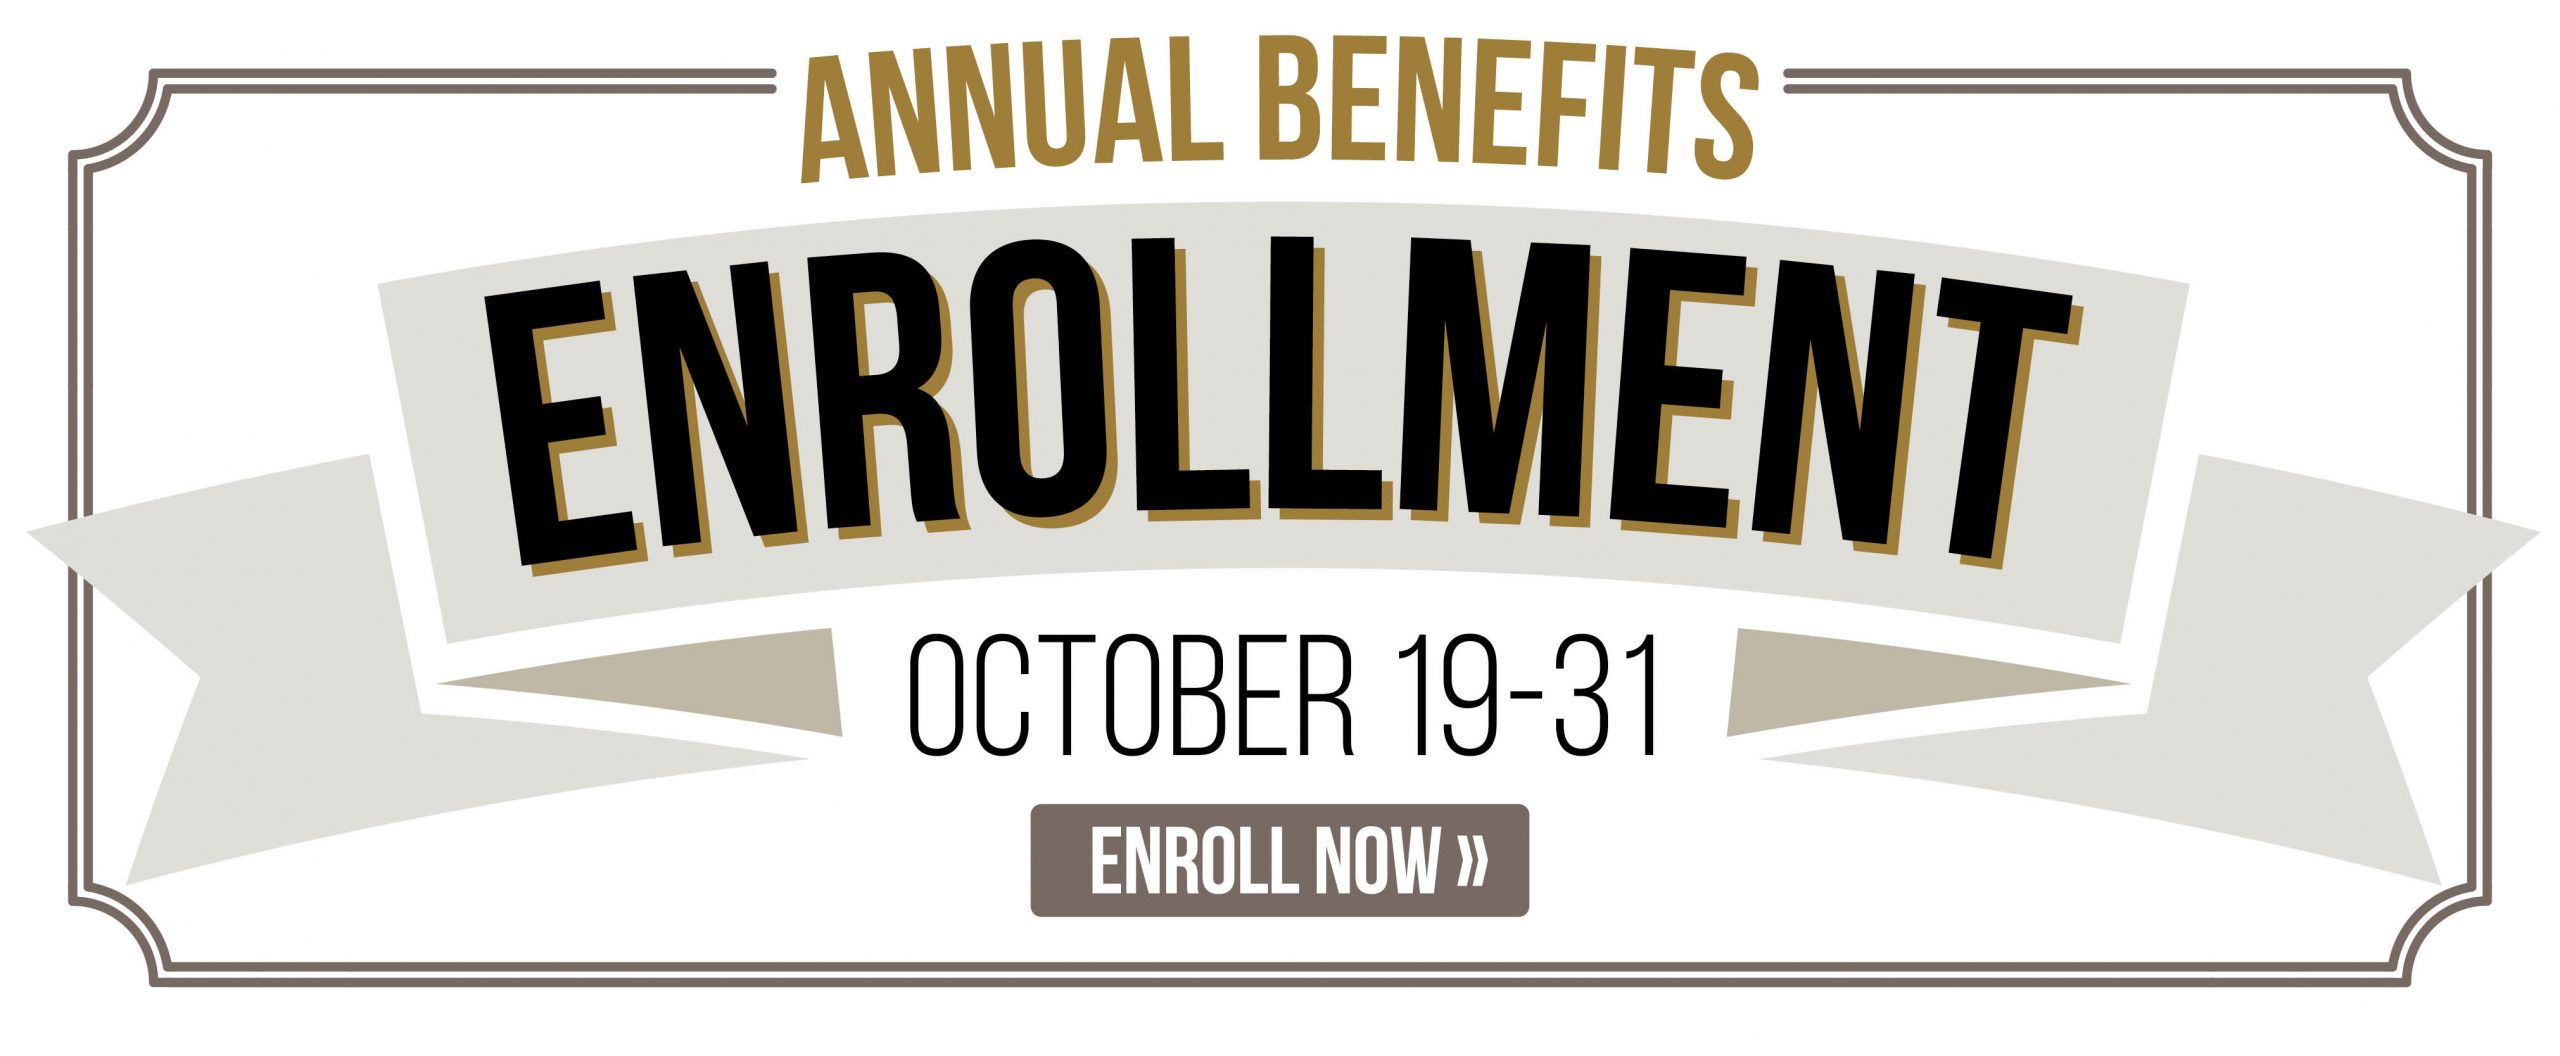 Annual Benefits Enrollment, October 19-31, 2020 - Enroll Now